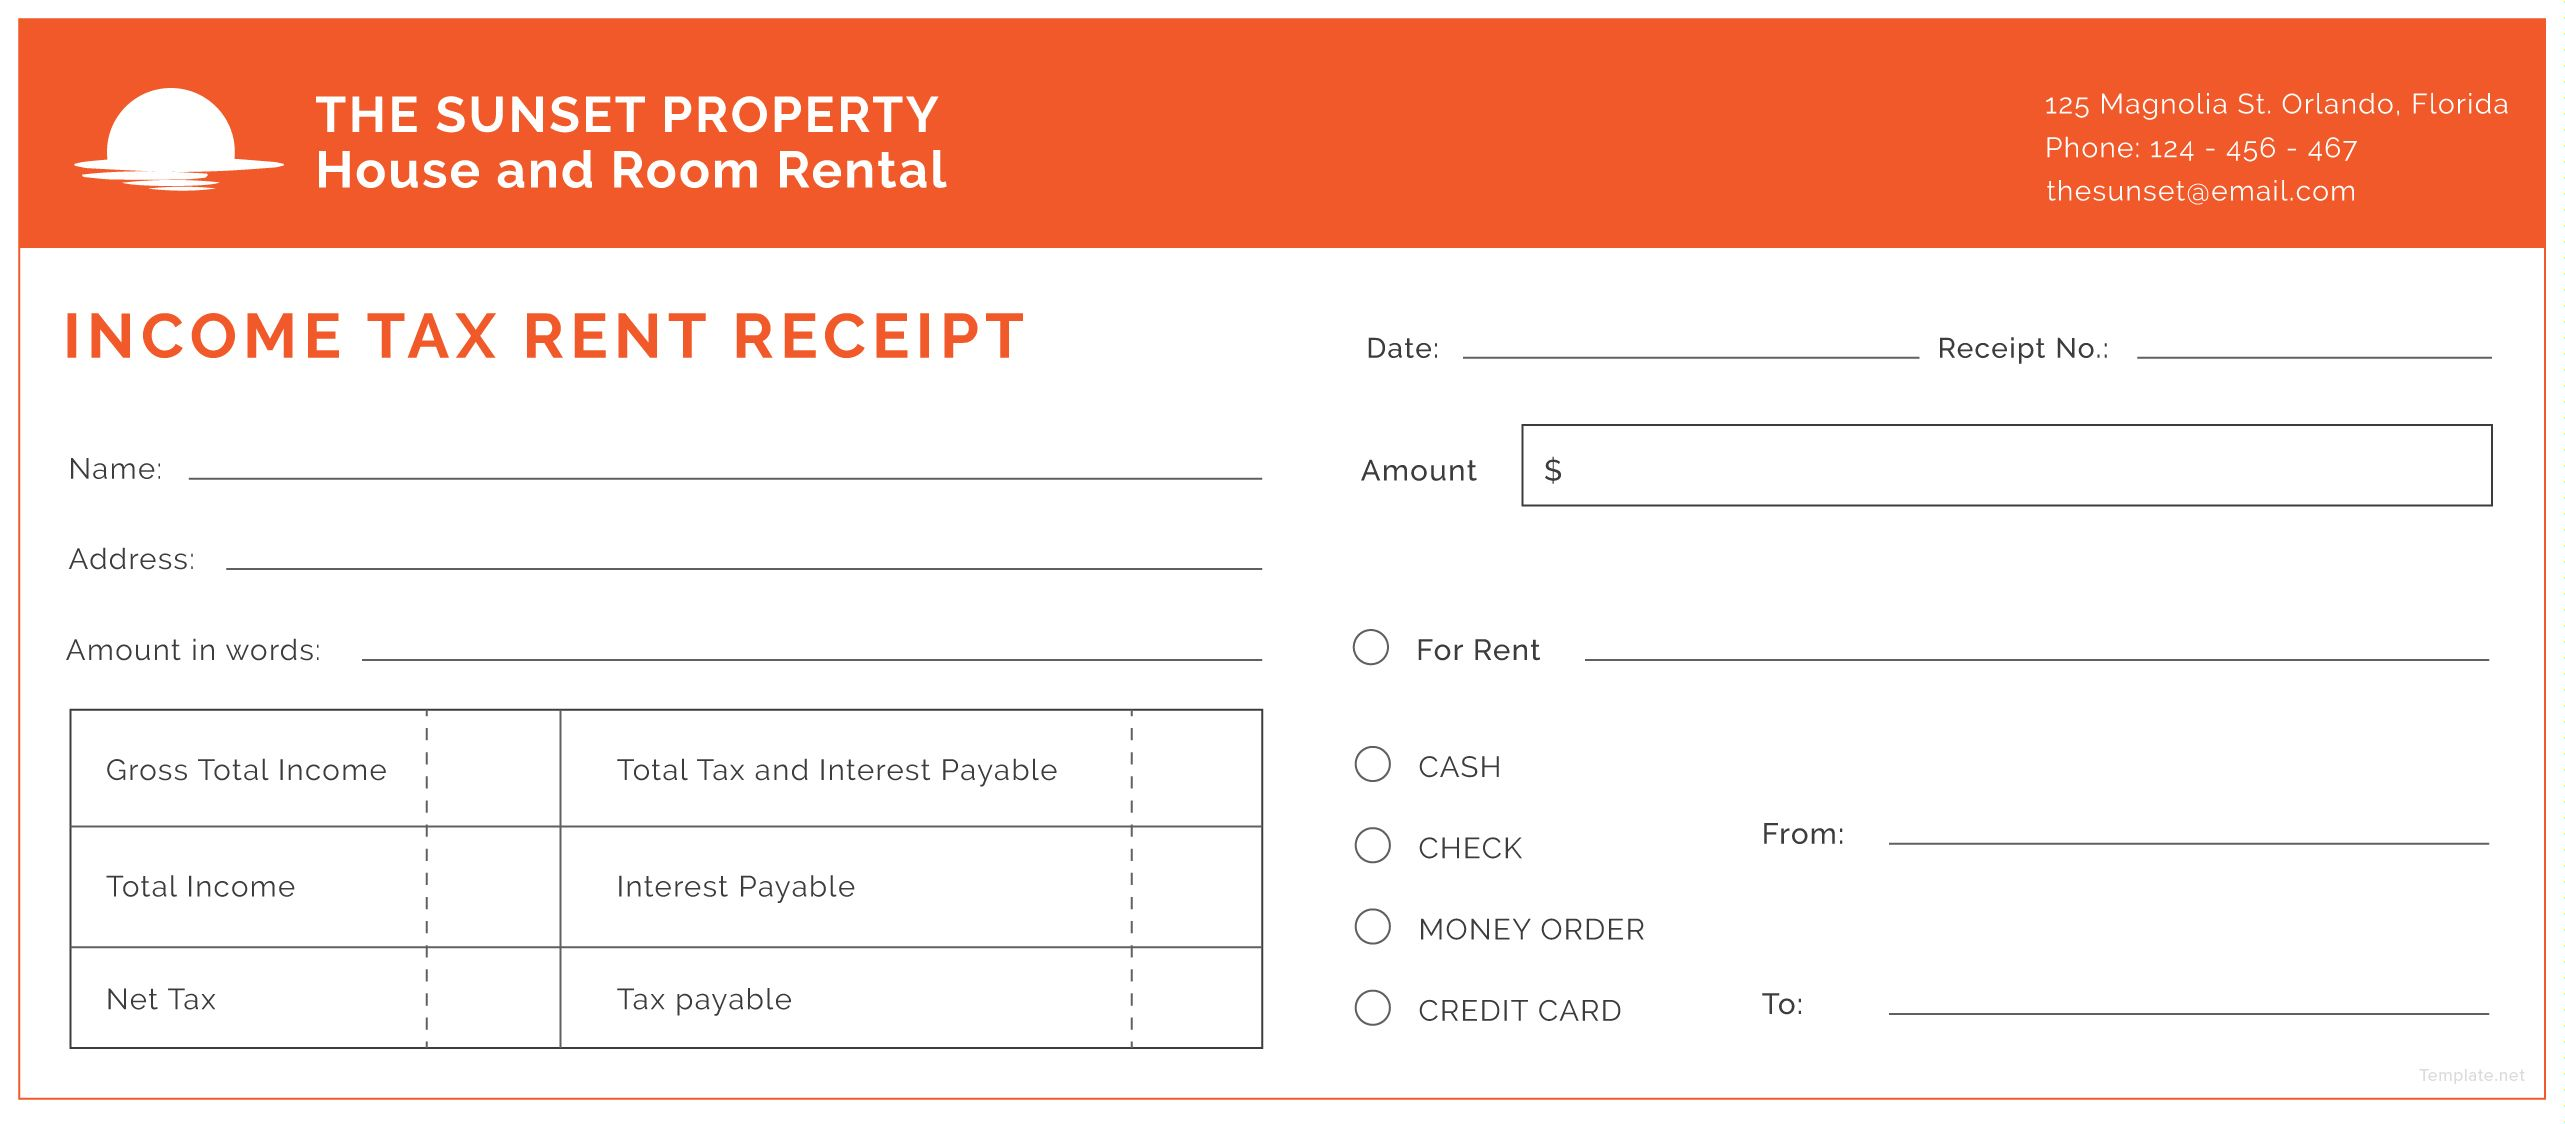 Free Rent Receipts Magnificent Download Income Tax Rent Receipt Template For Free In Illustrator .